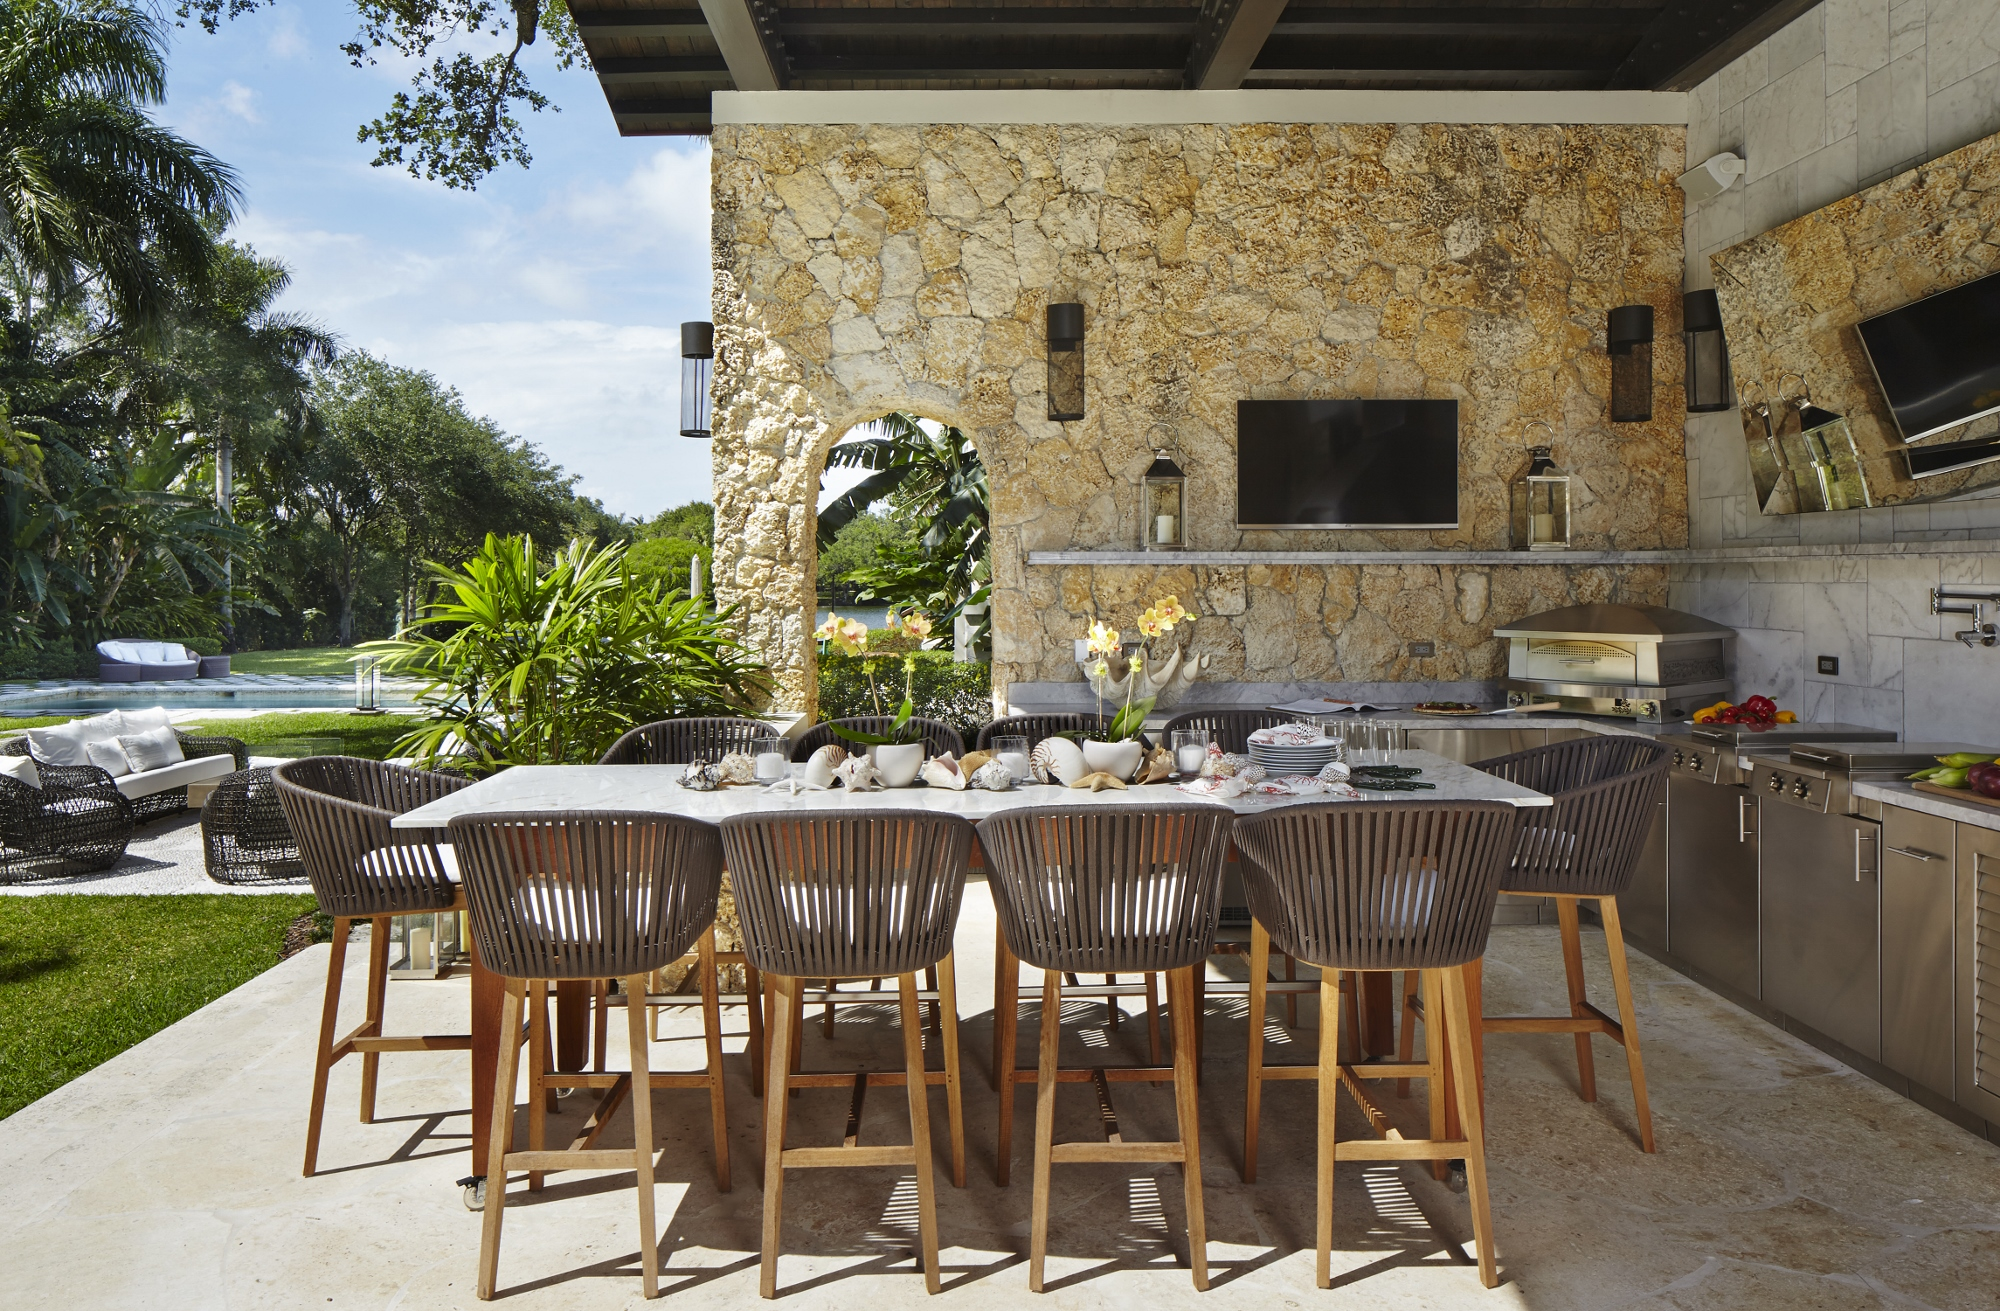 Outdoor Kitchens Expected To Be Hot In 2015 Kitchen Studio Of Naples Inc